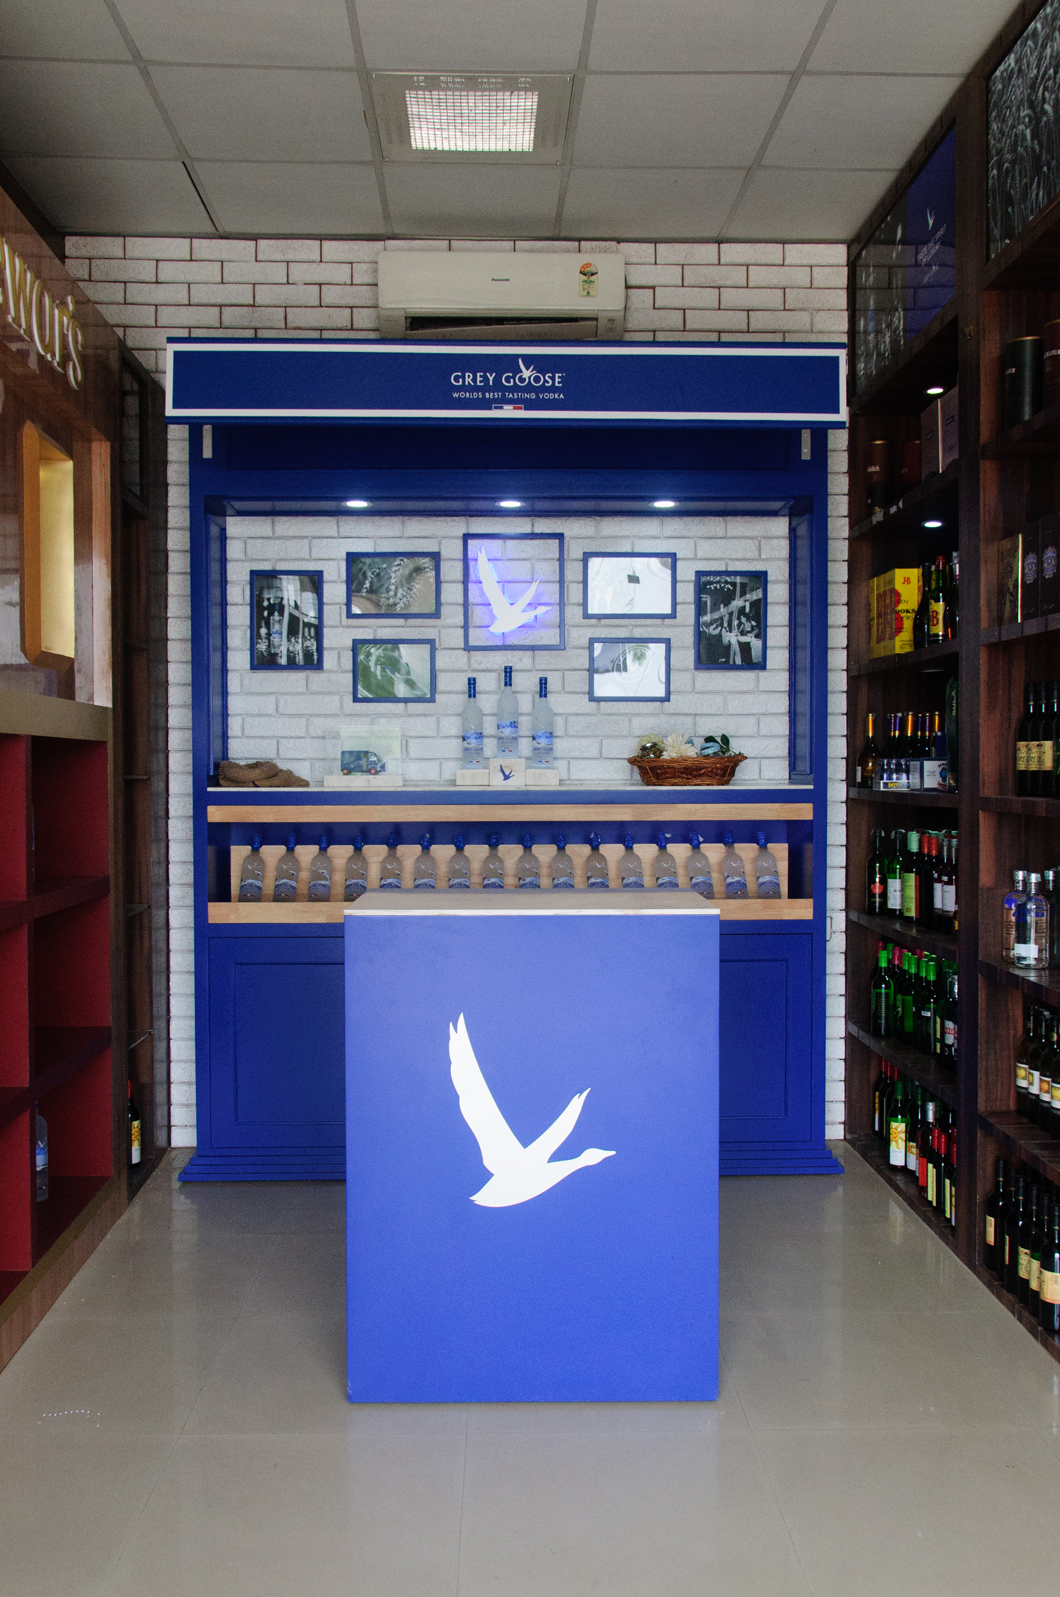 Grey Goose luxury Brand Showcase for Bacardi - by Kiba Design - installed